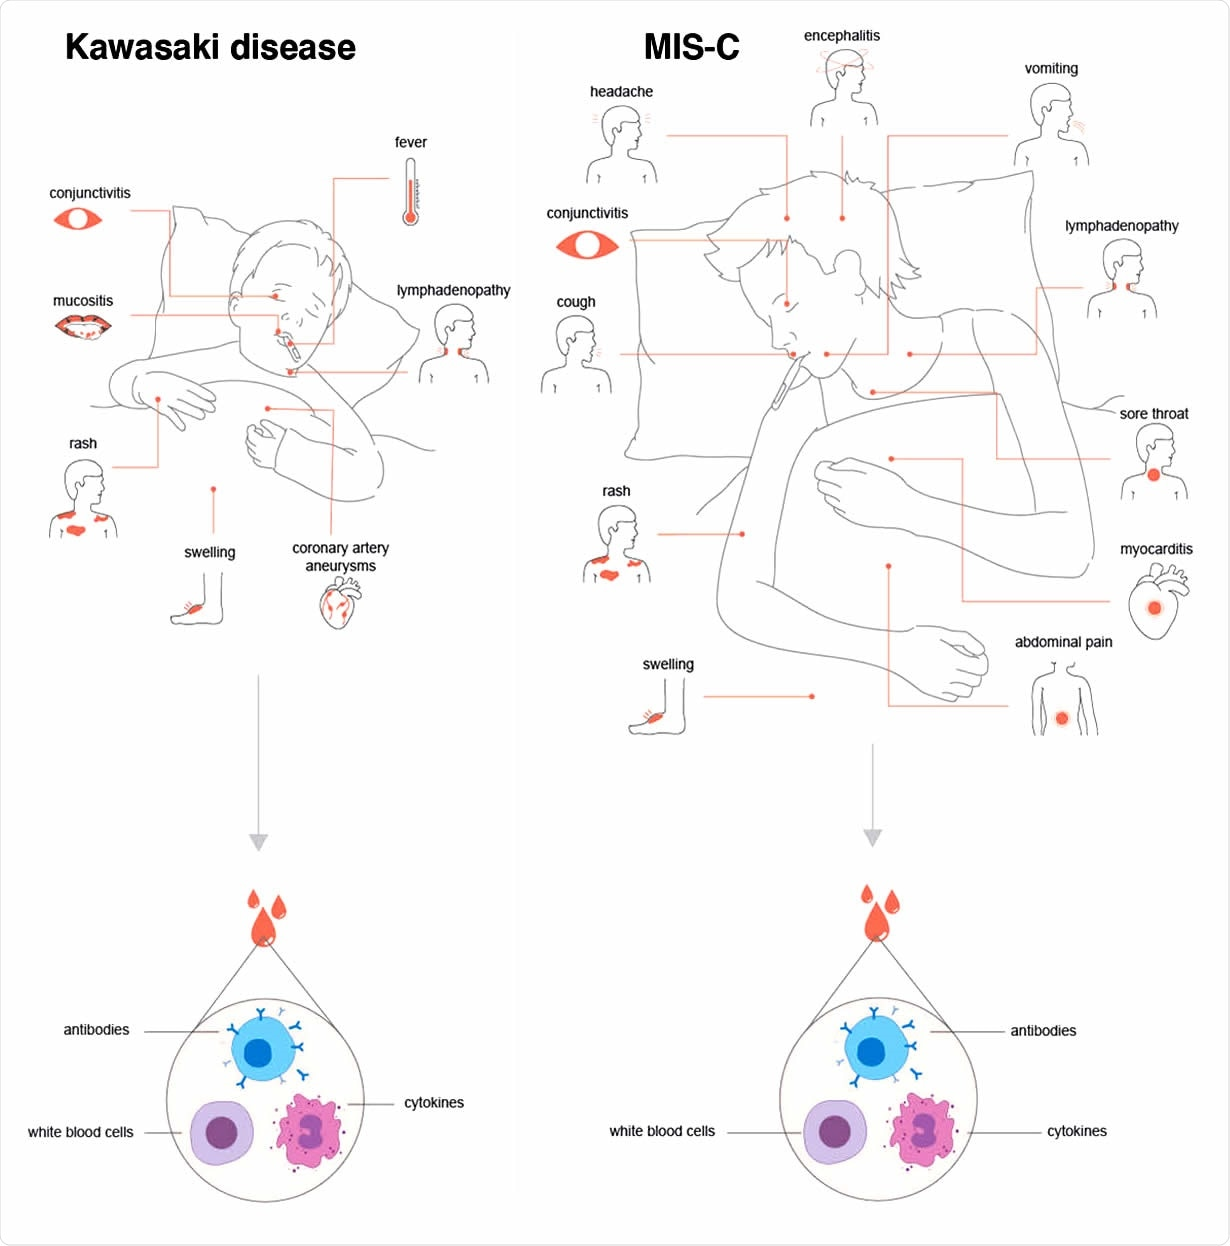 MIS-C has overlapping features with Kawasaki disease